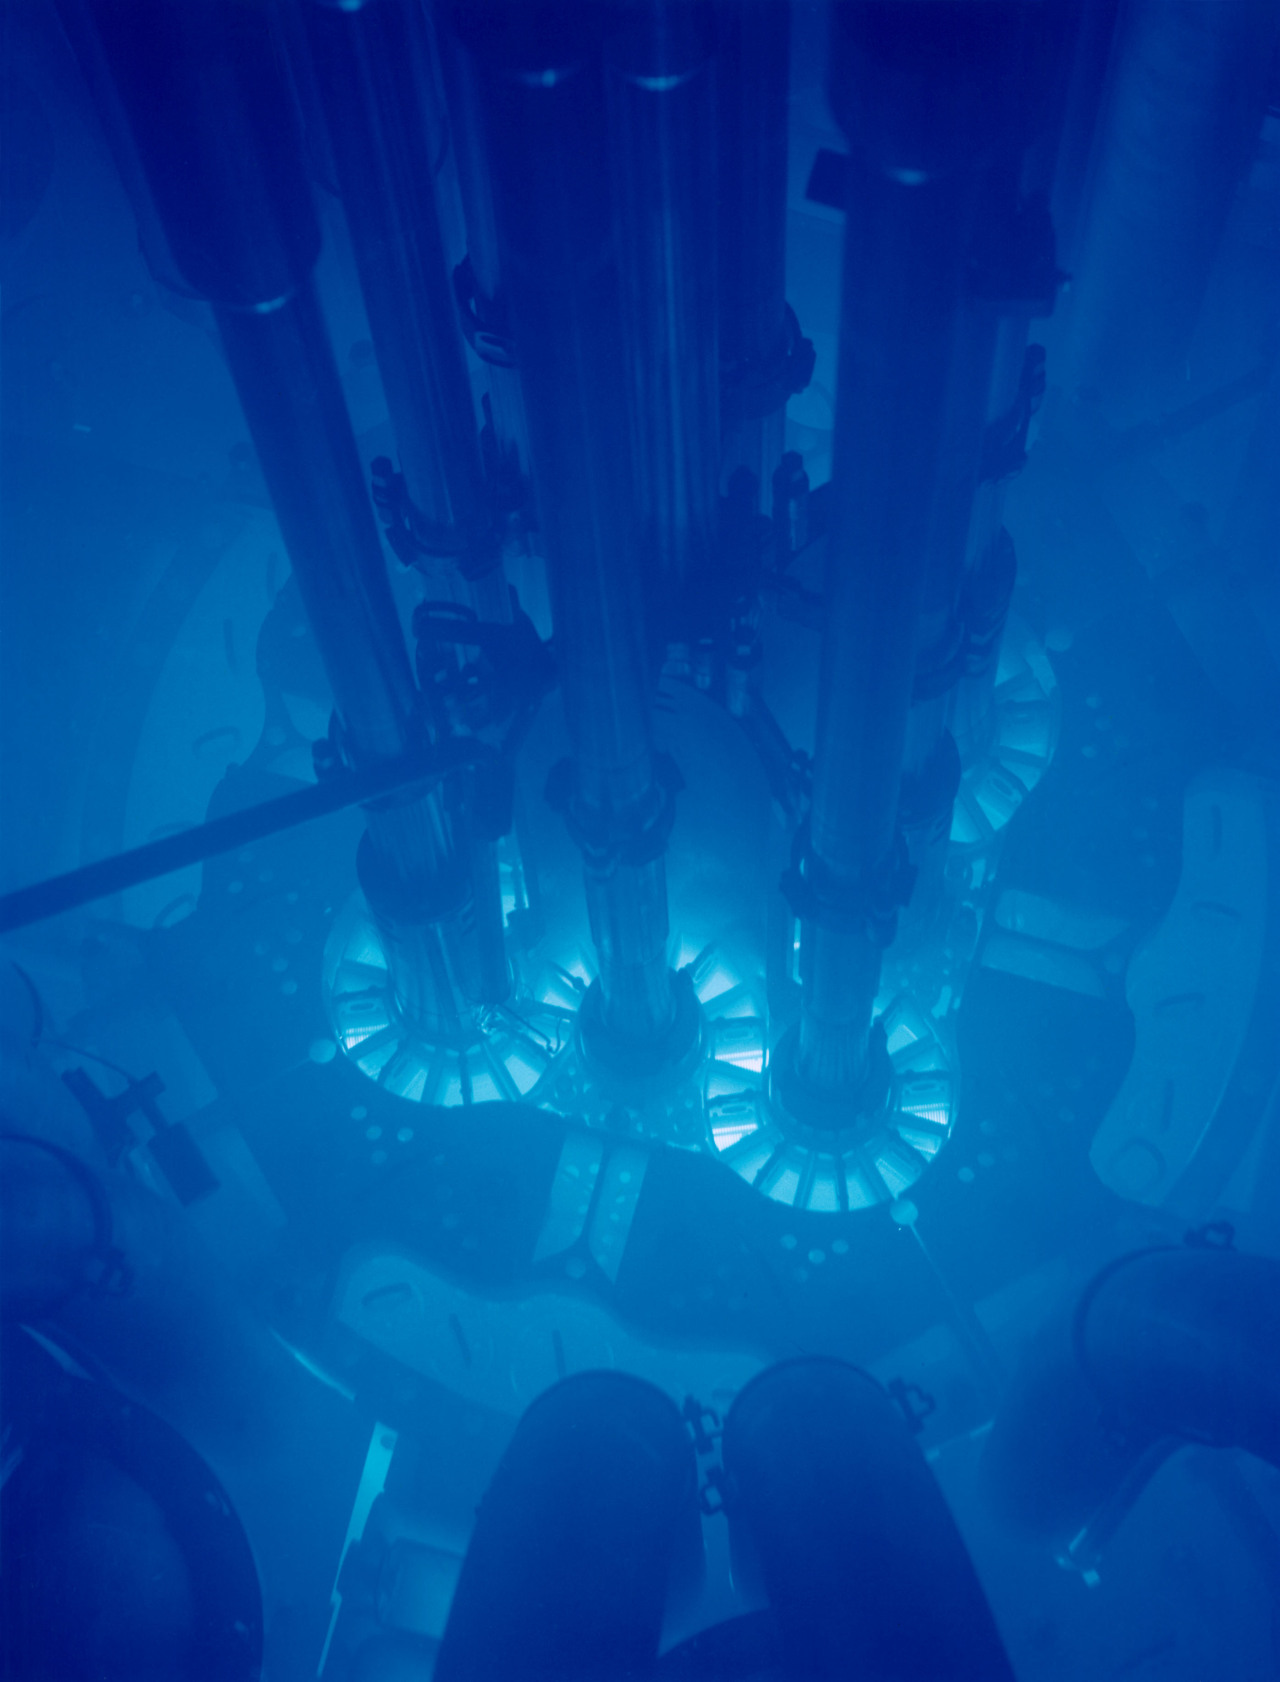 Cherenkov radiation glowing in the core of the Advanced Test Reactor (ATR), a research reactor at the Idaho National Laboratory, Idaho, USA. Cherenkov radiation is electromagnetic radiation emitted when a charged particle (such as an electron) passes through a dielectric medium at a speed greater than the phase velocity of light in that medium. The charged particles polarize the molecules of that medium, which then turn back rapidly to their ground state, emitting radiation in the process. The characteristic blue glow of nuclear reactors is due to Cherenkov radiation.